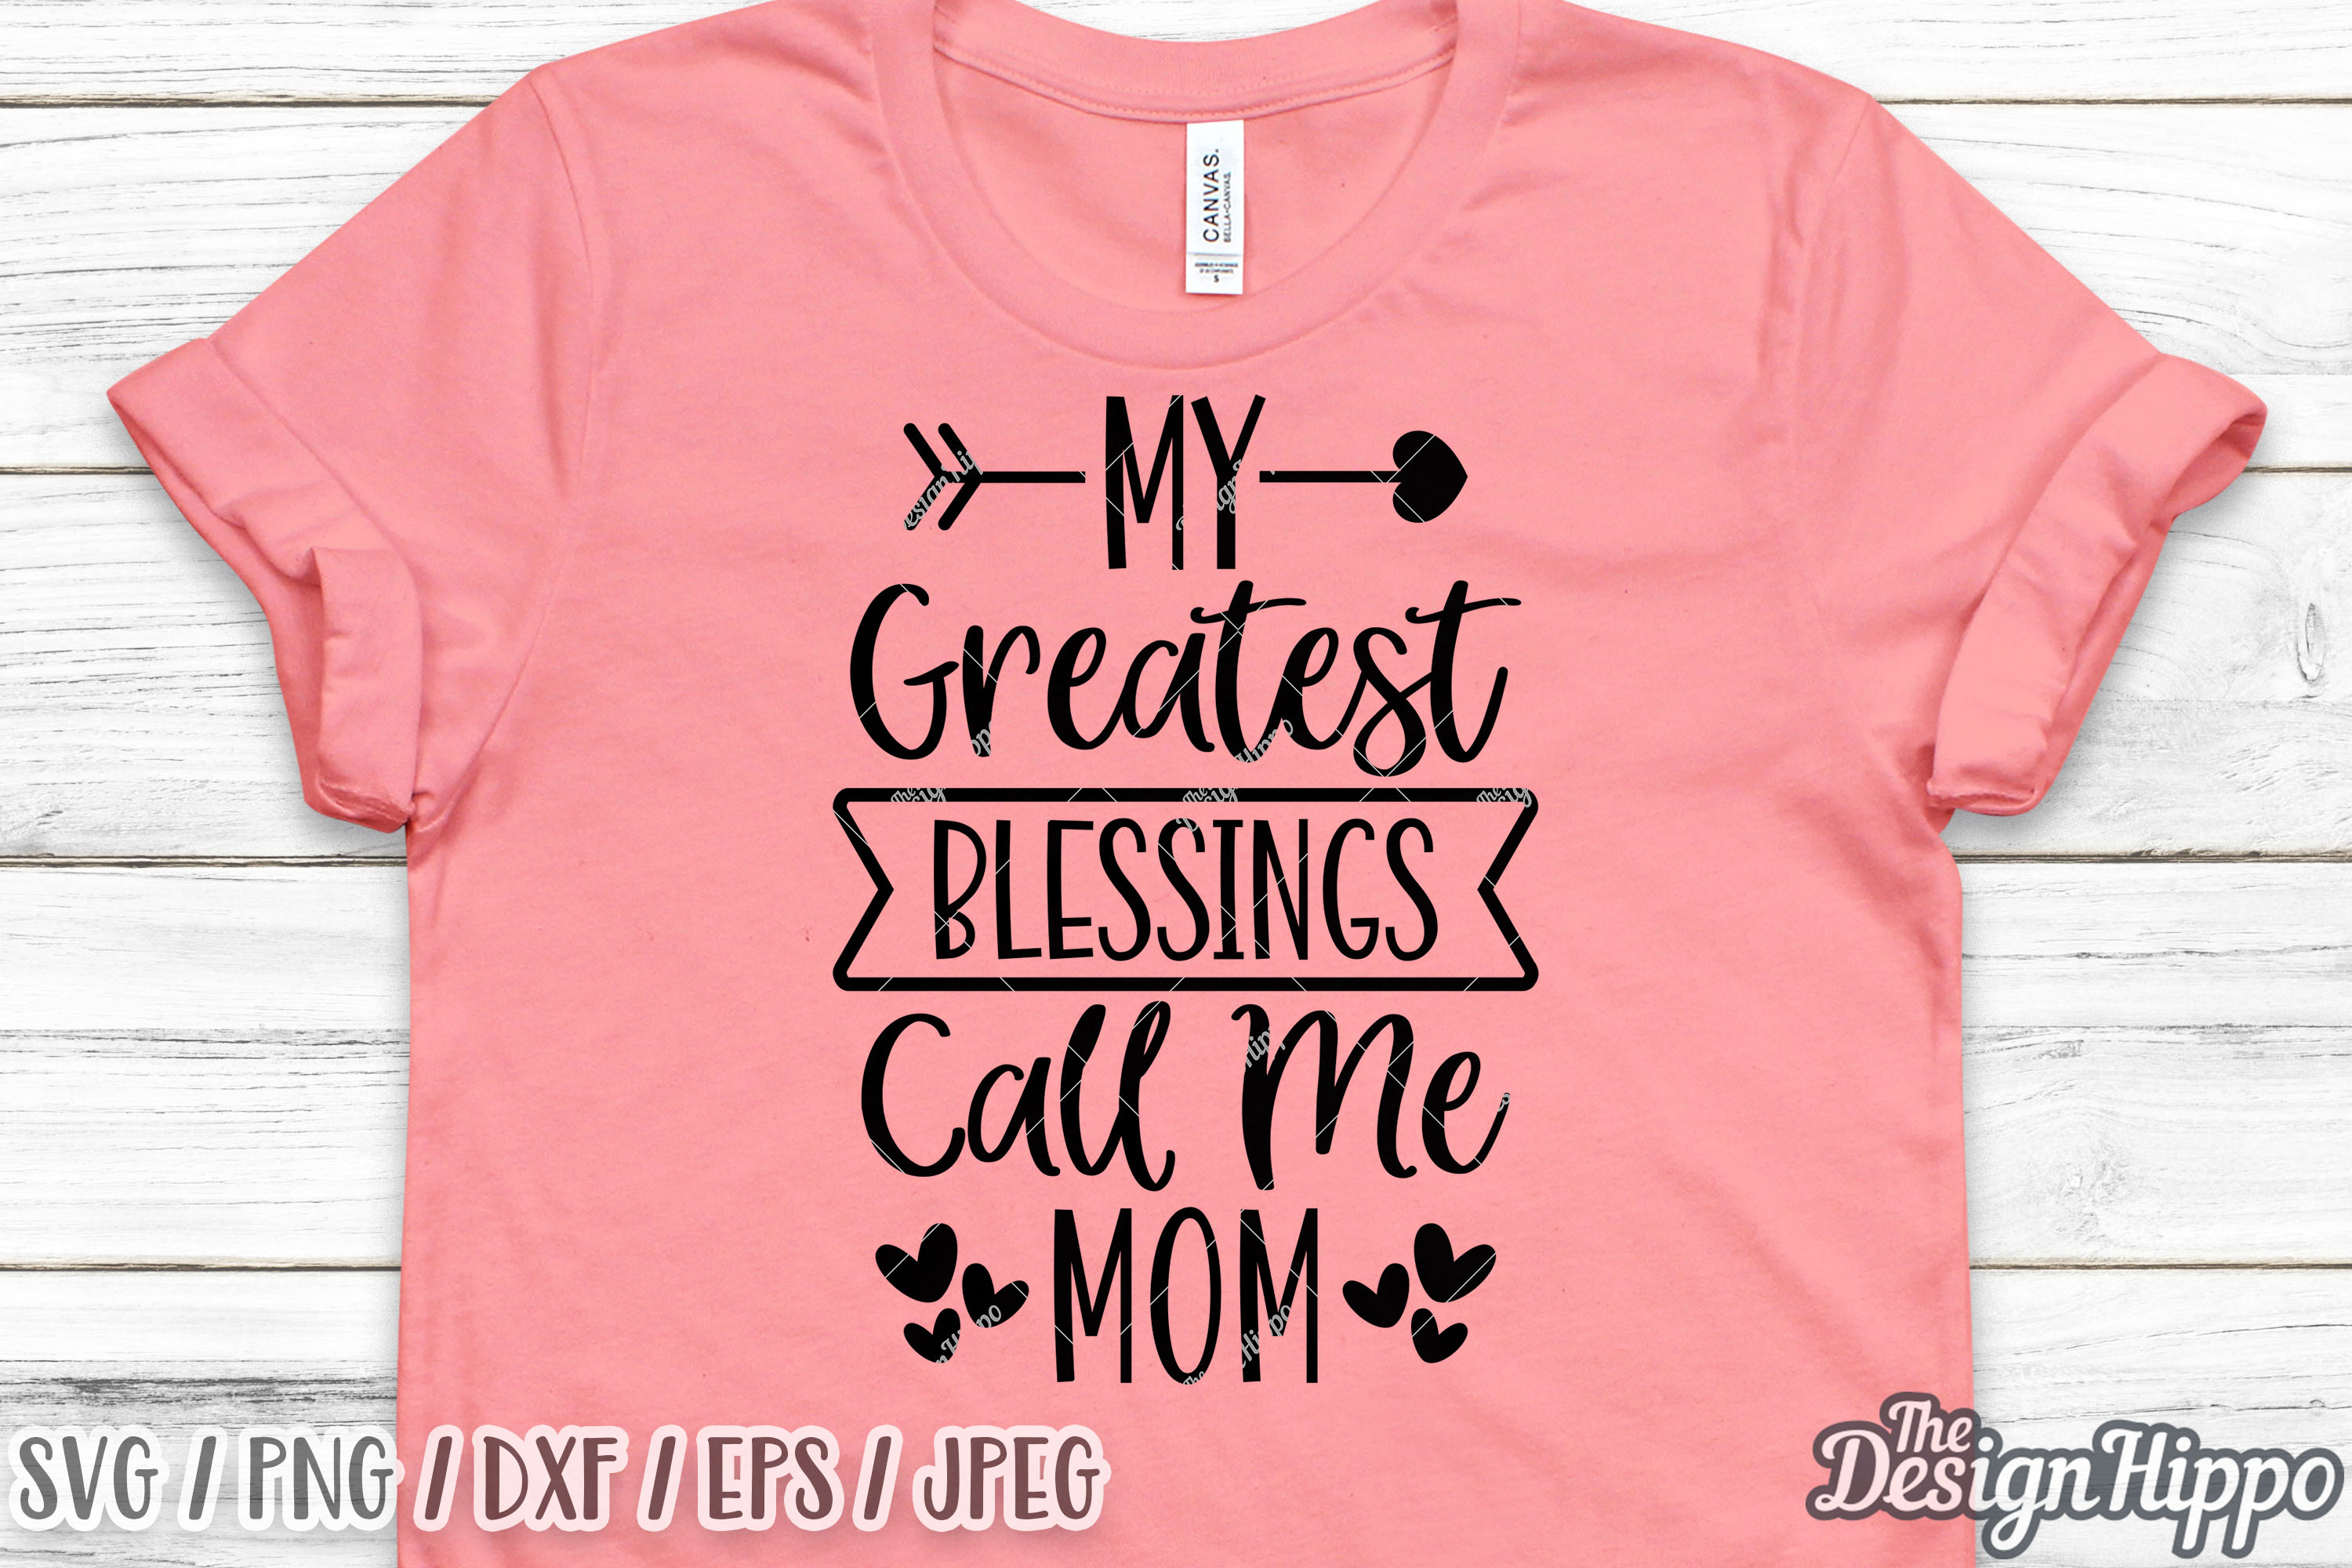 Mom Quotes SVG Bundle, 20 Designs, SVG PNG DXF Cutting Files example image 11